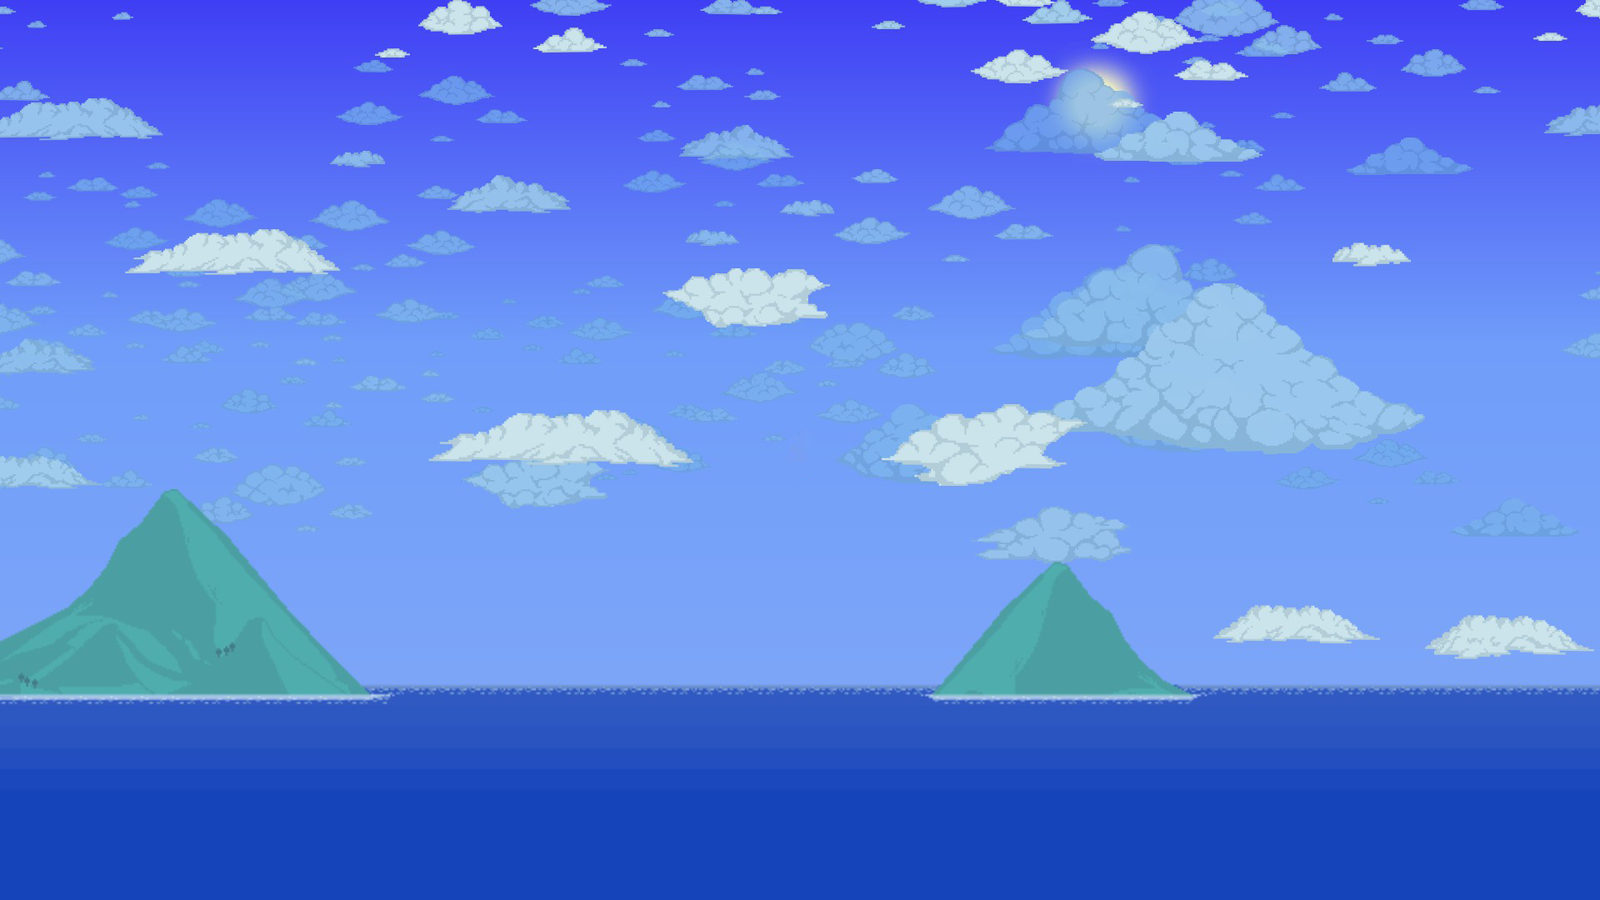 terraria___sea_background_by_gt4tube-d7tyf6d.png